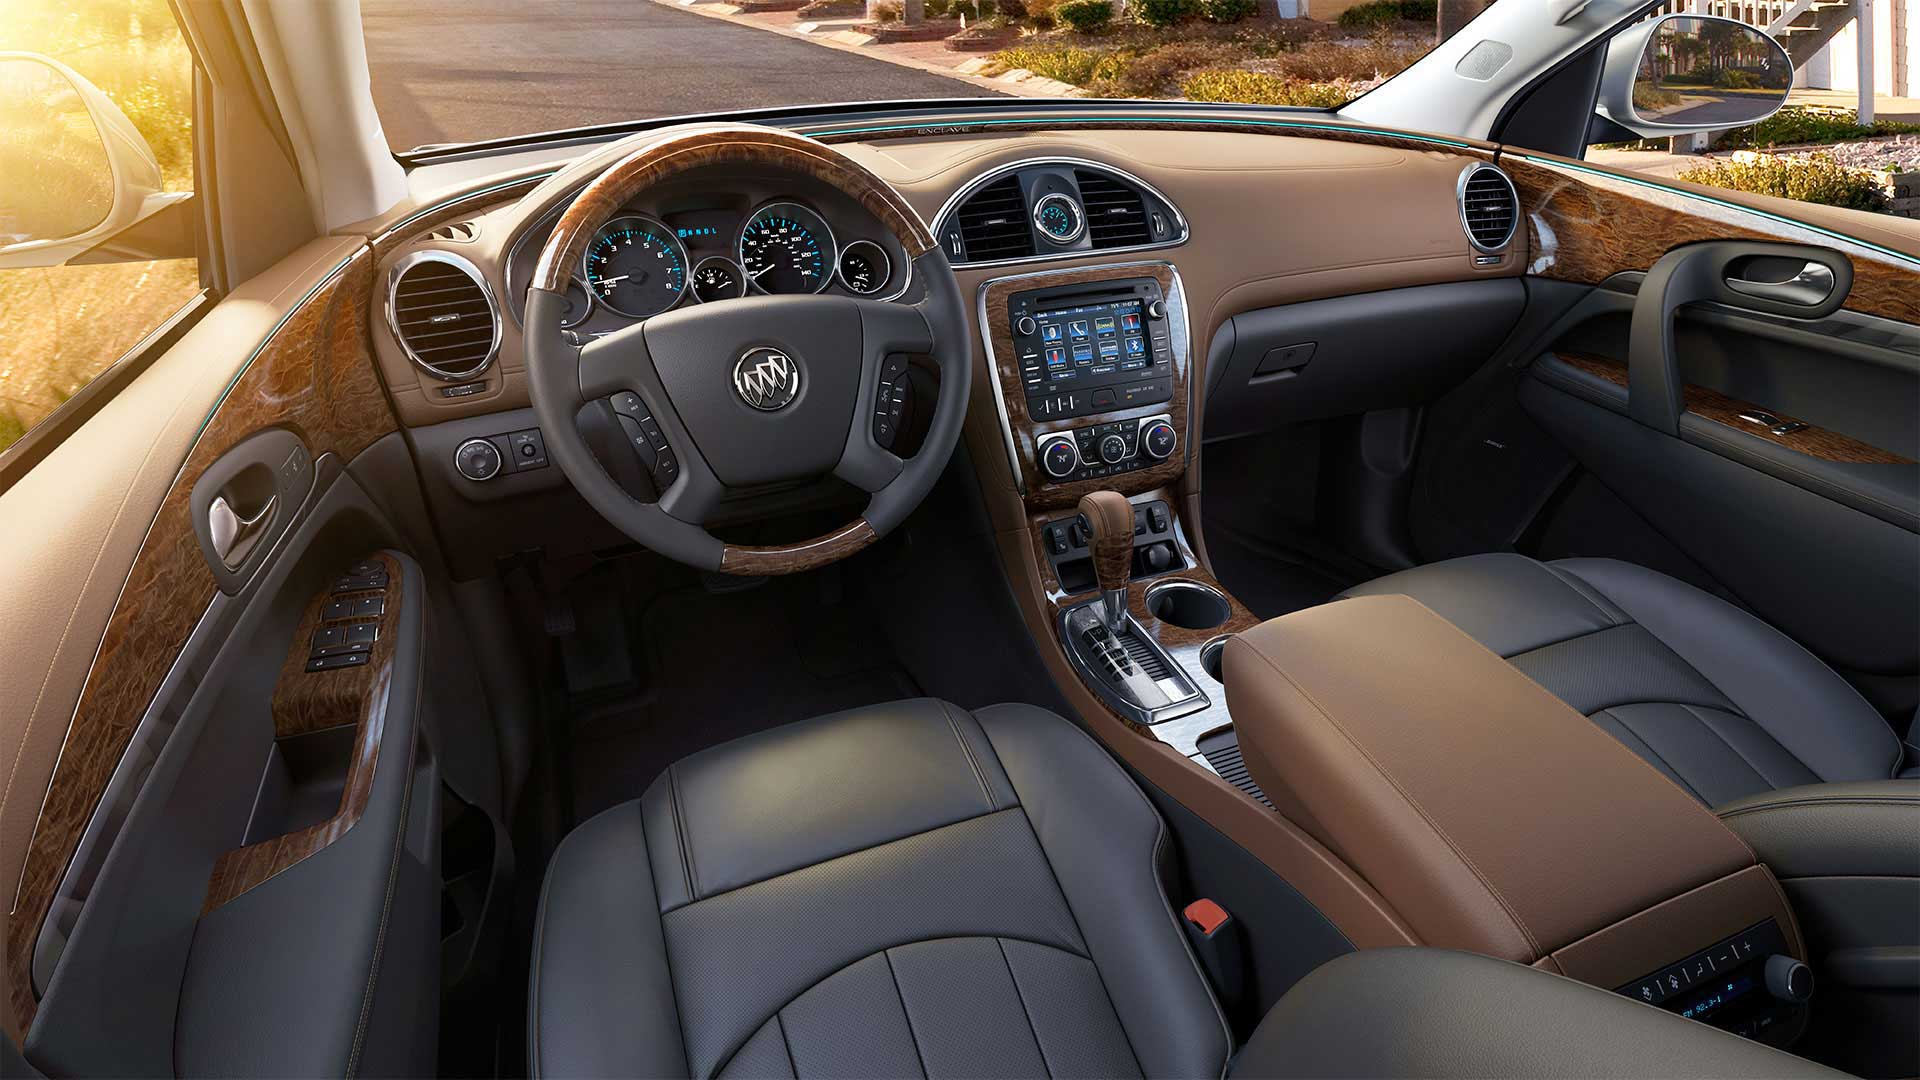 Buick Enclave Interior Dimensions   www.indiepedia.org